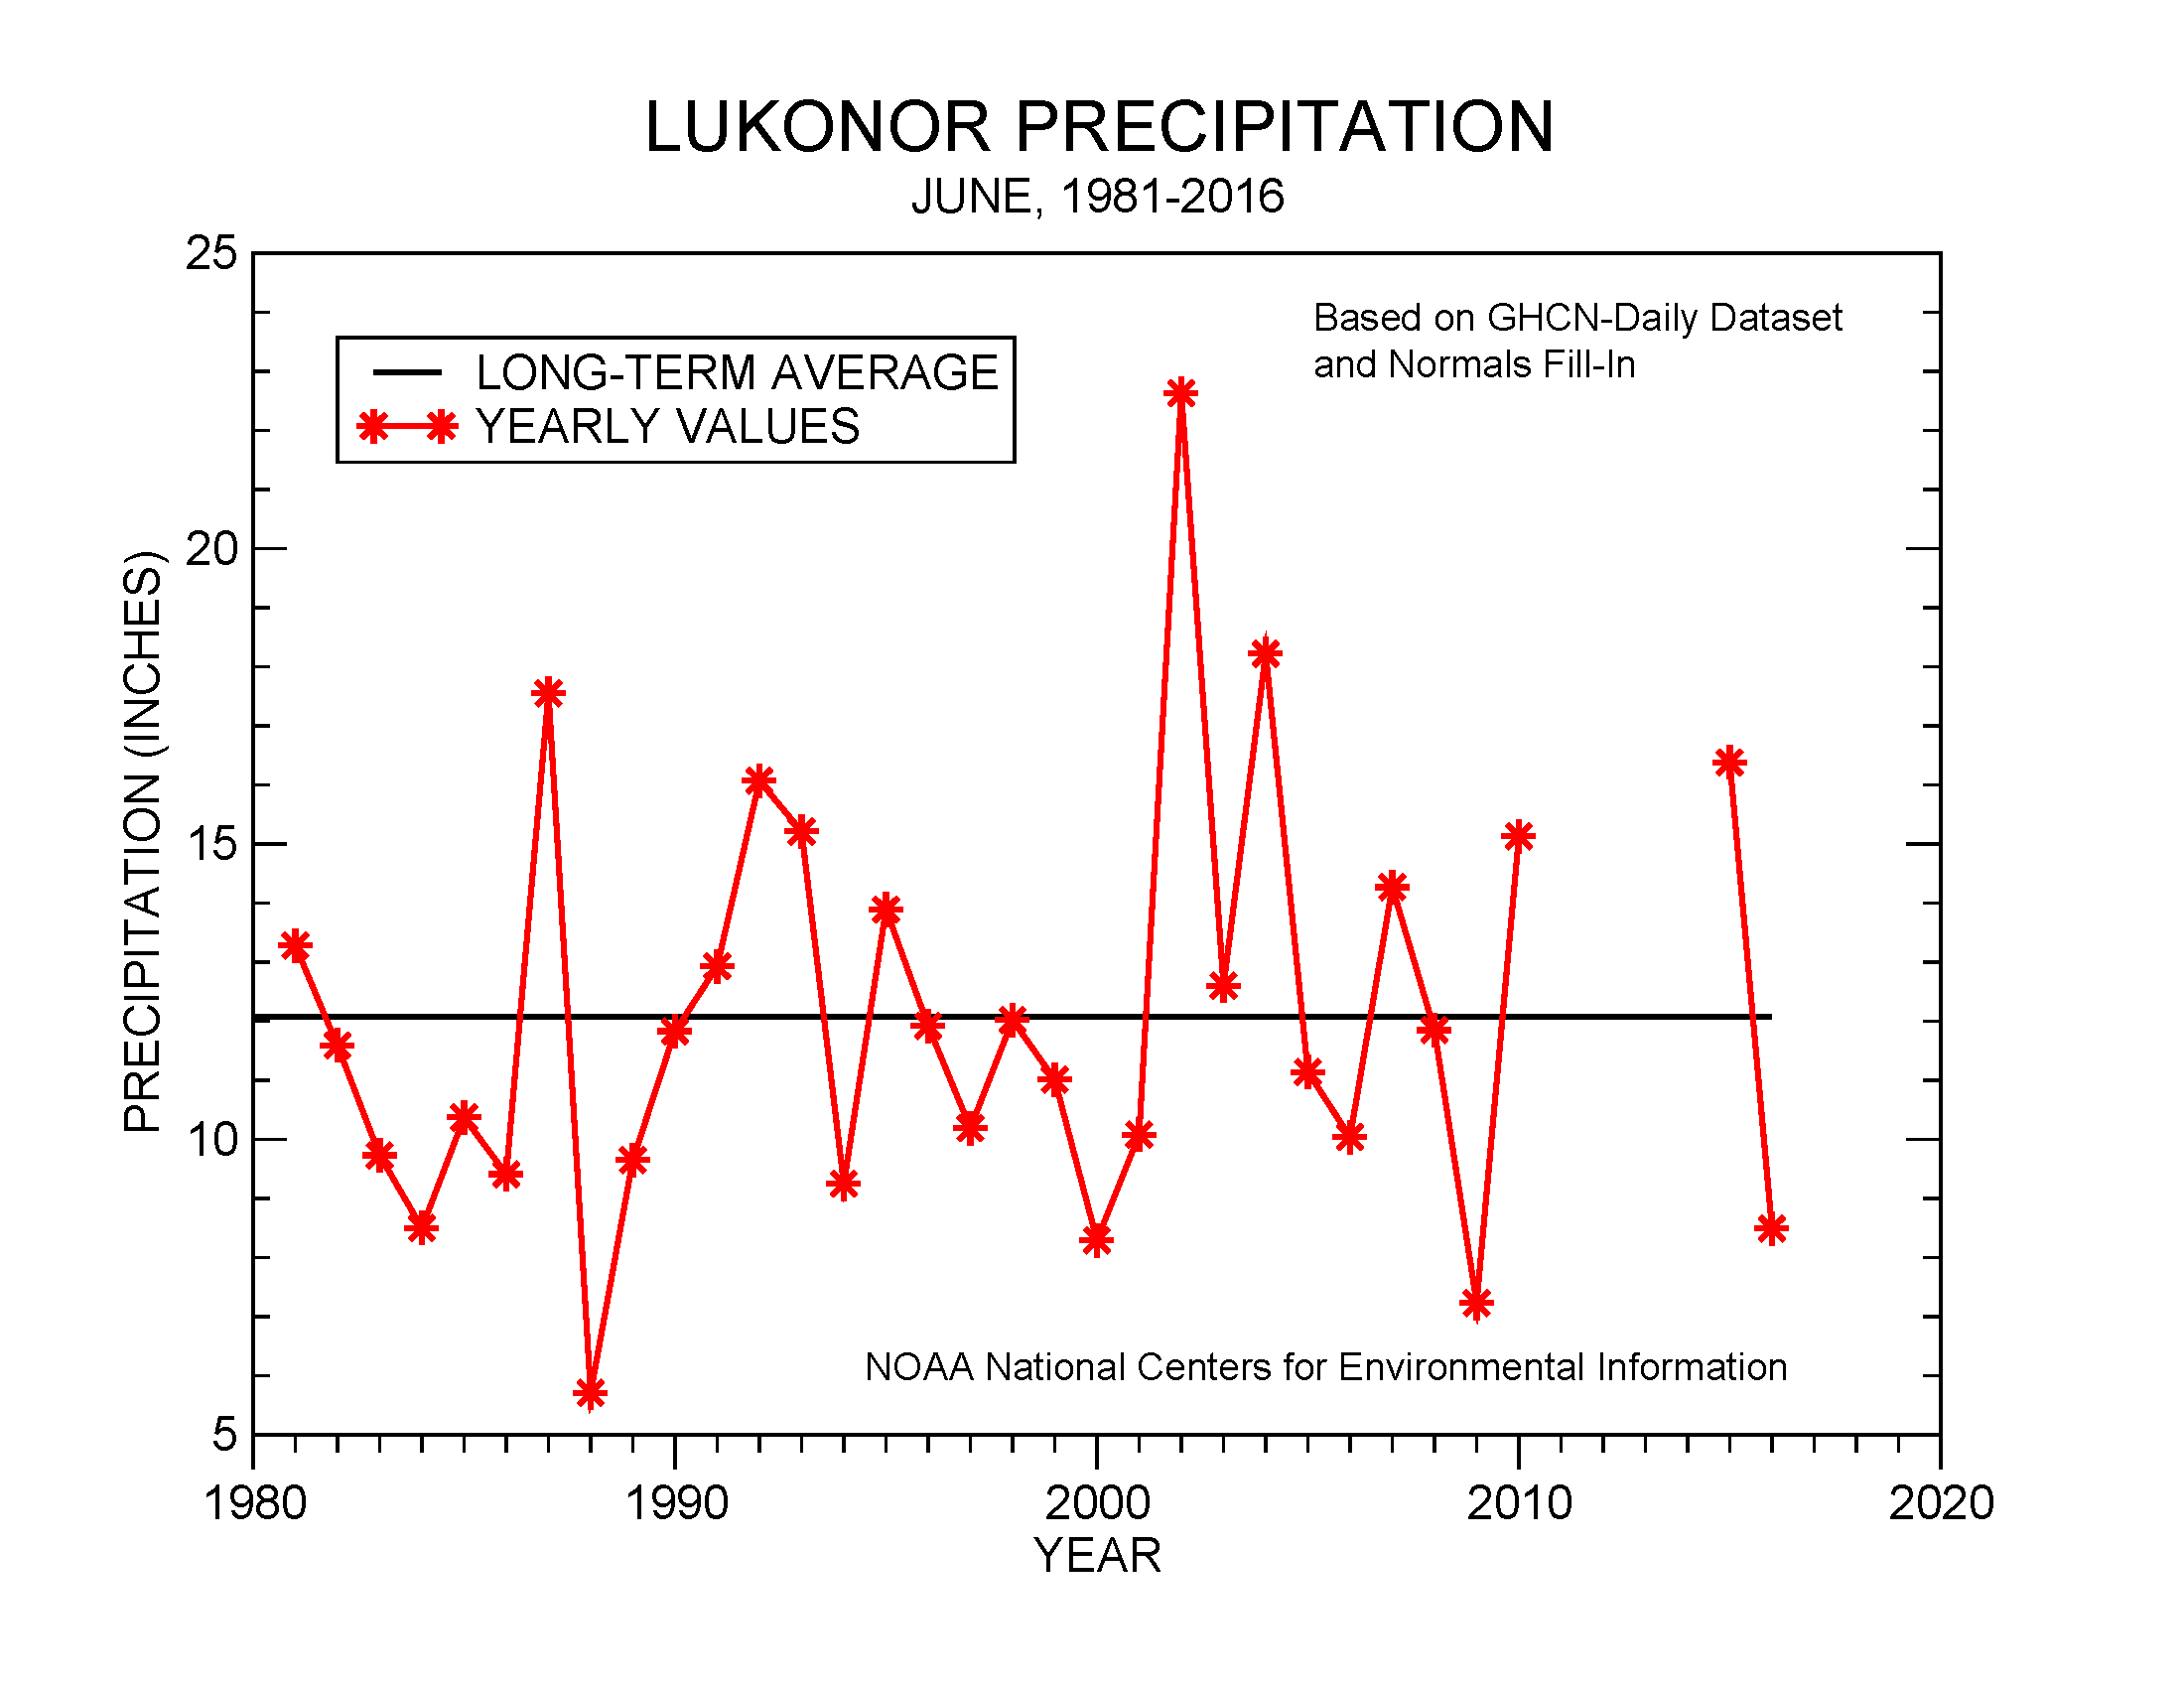 June precipitation at Lukonor, 1981-2016